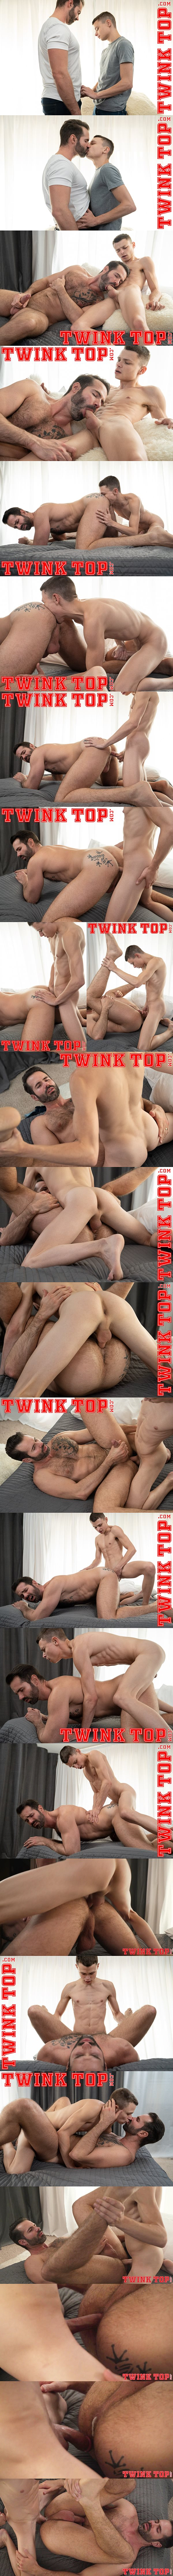 Twinktop - twink Austin Young (aka Austin Armstrong) barebacks handsome bearded muscle daddy Dani Robles before he creampies Dani in an older younger scene in Extra Innings 02